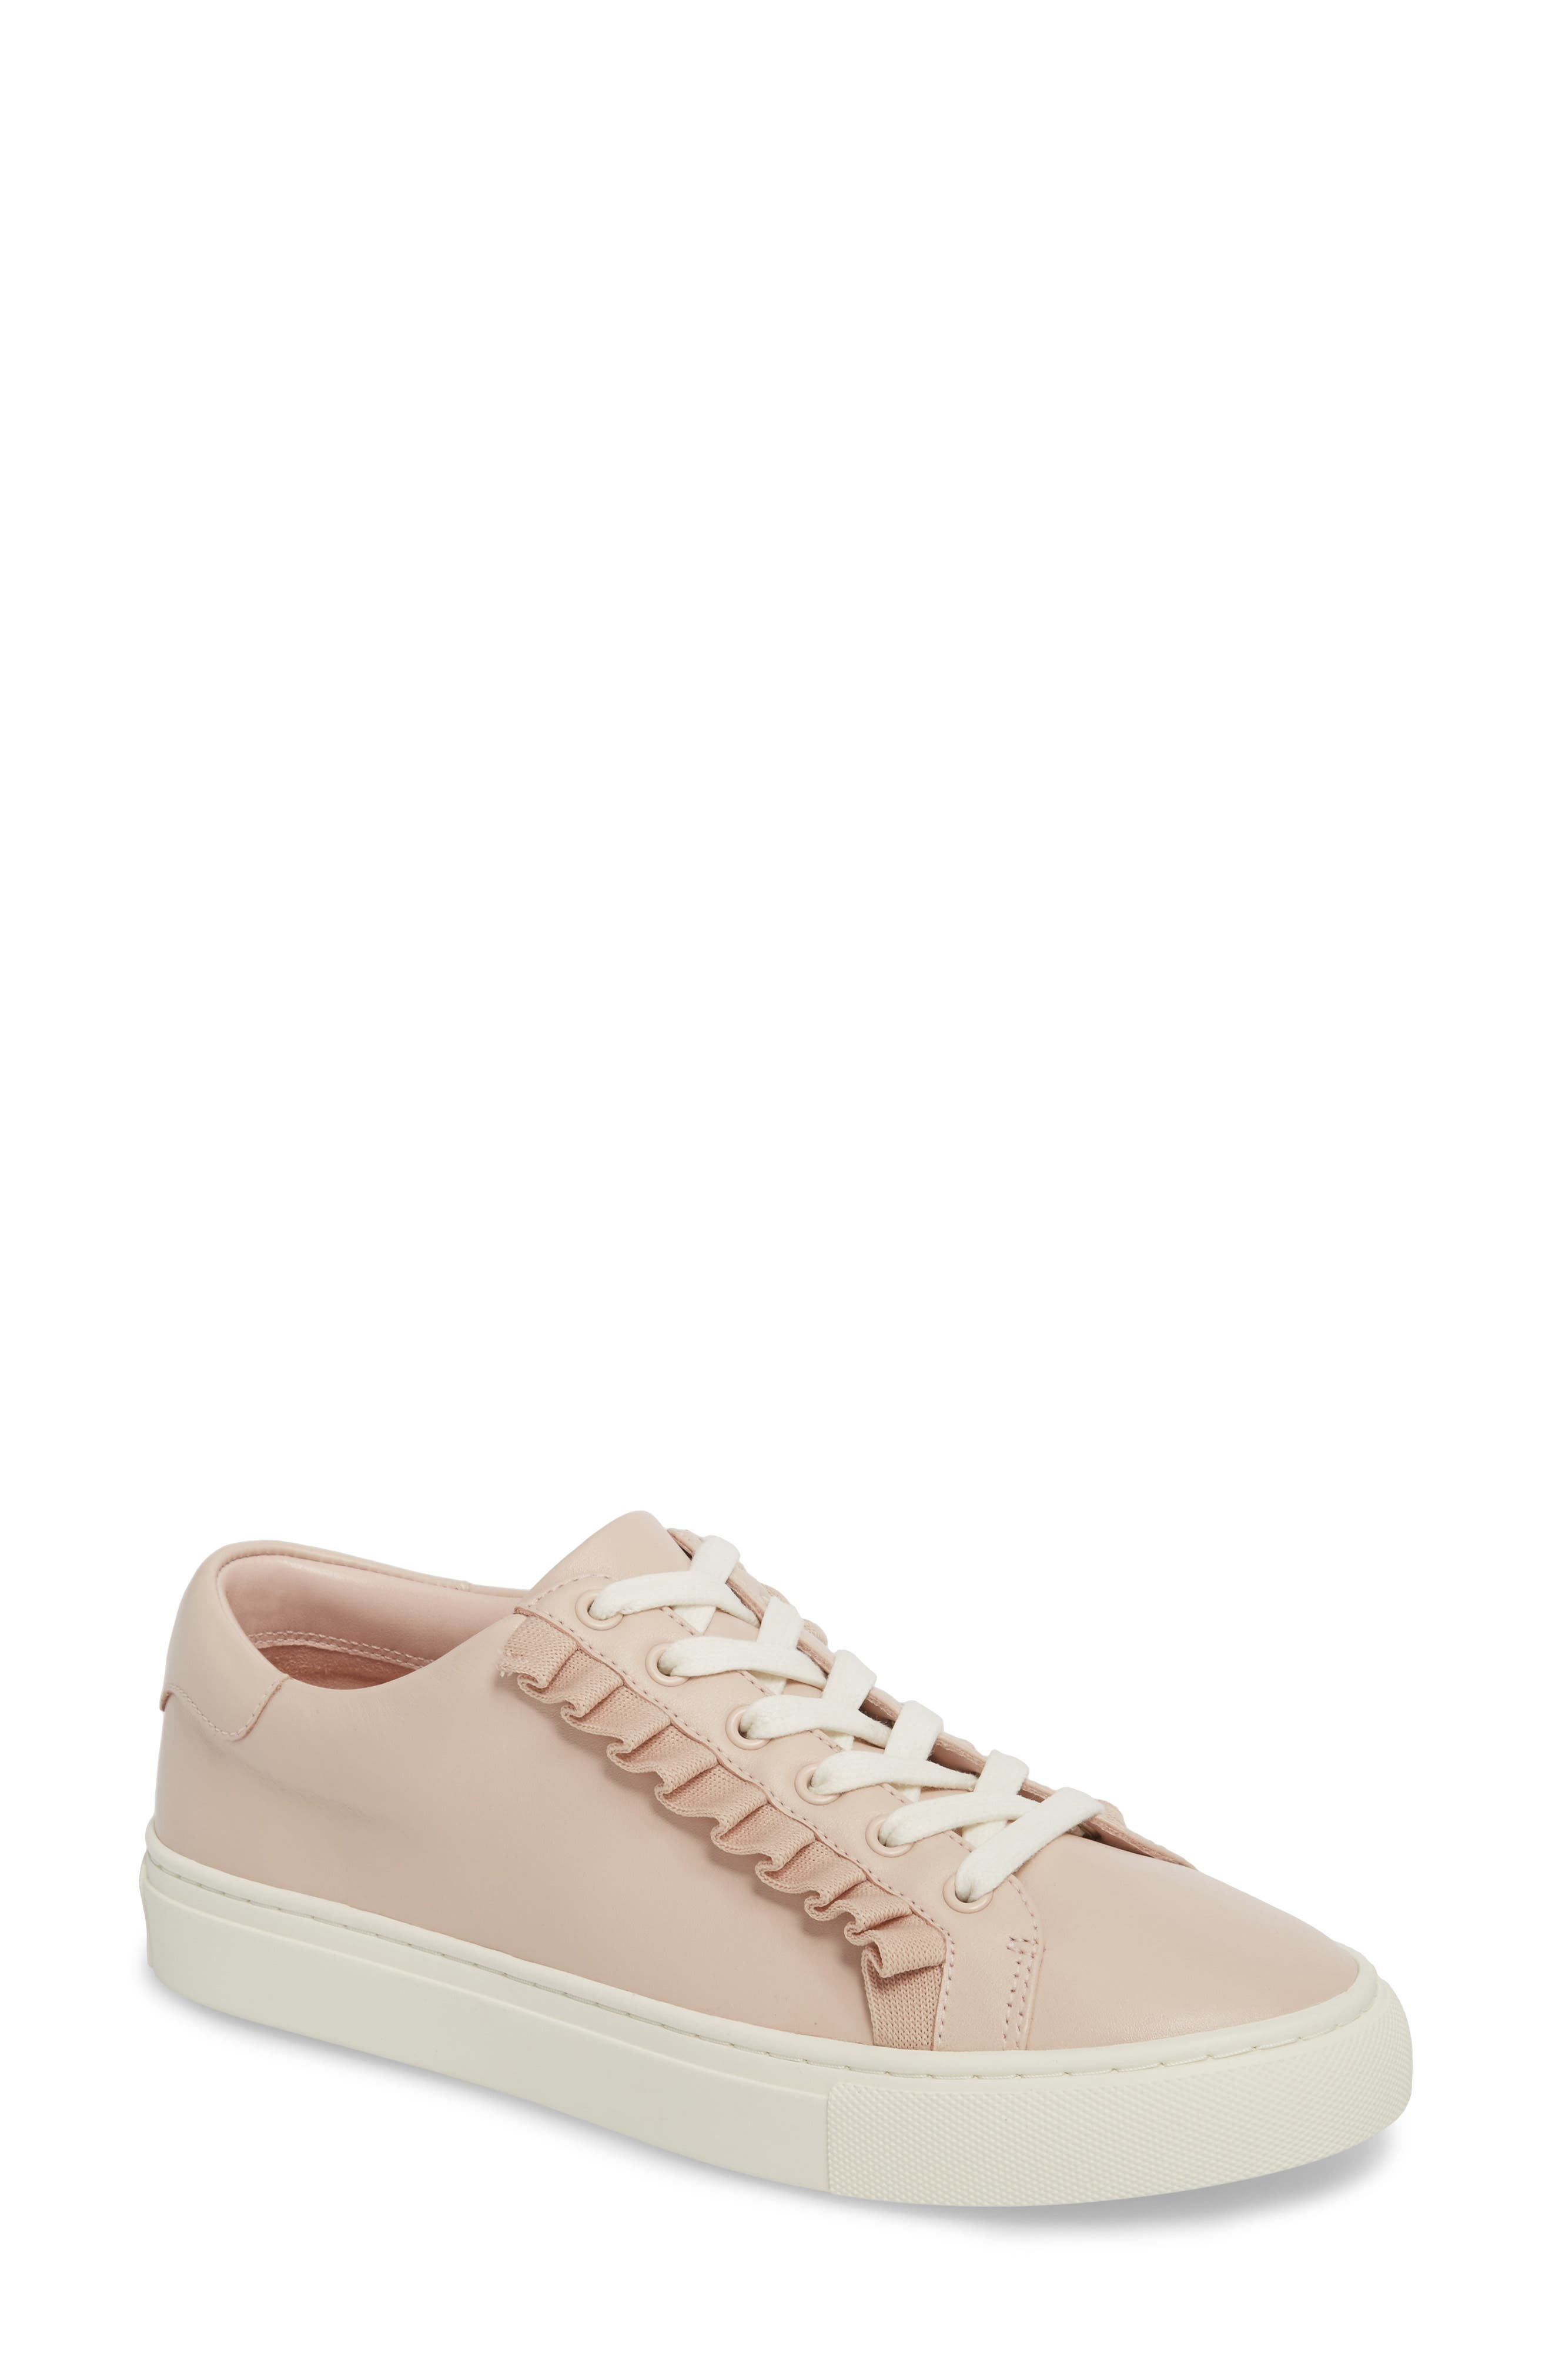 Ruffle Sneaker,                         Main,                         color, SHELL PINK